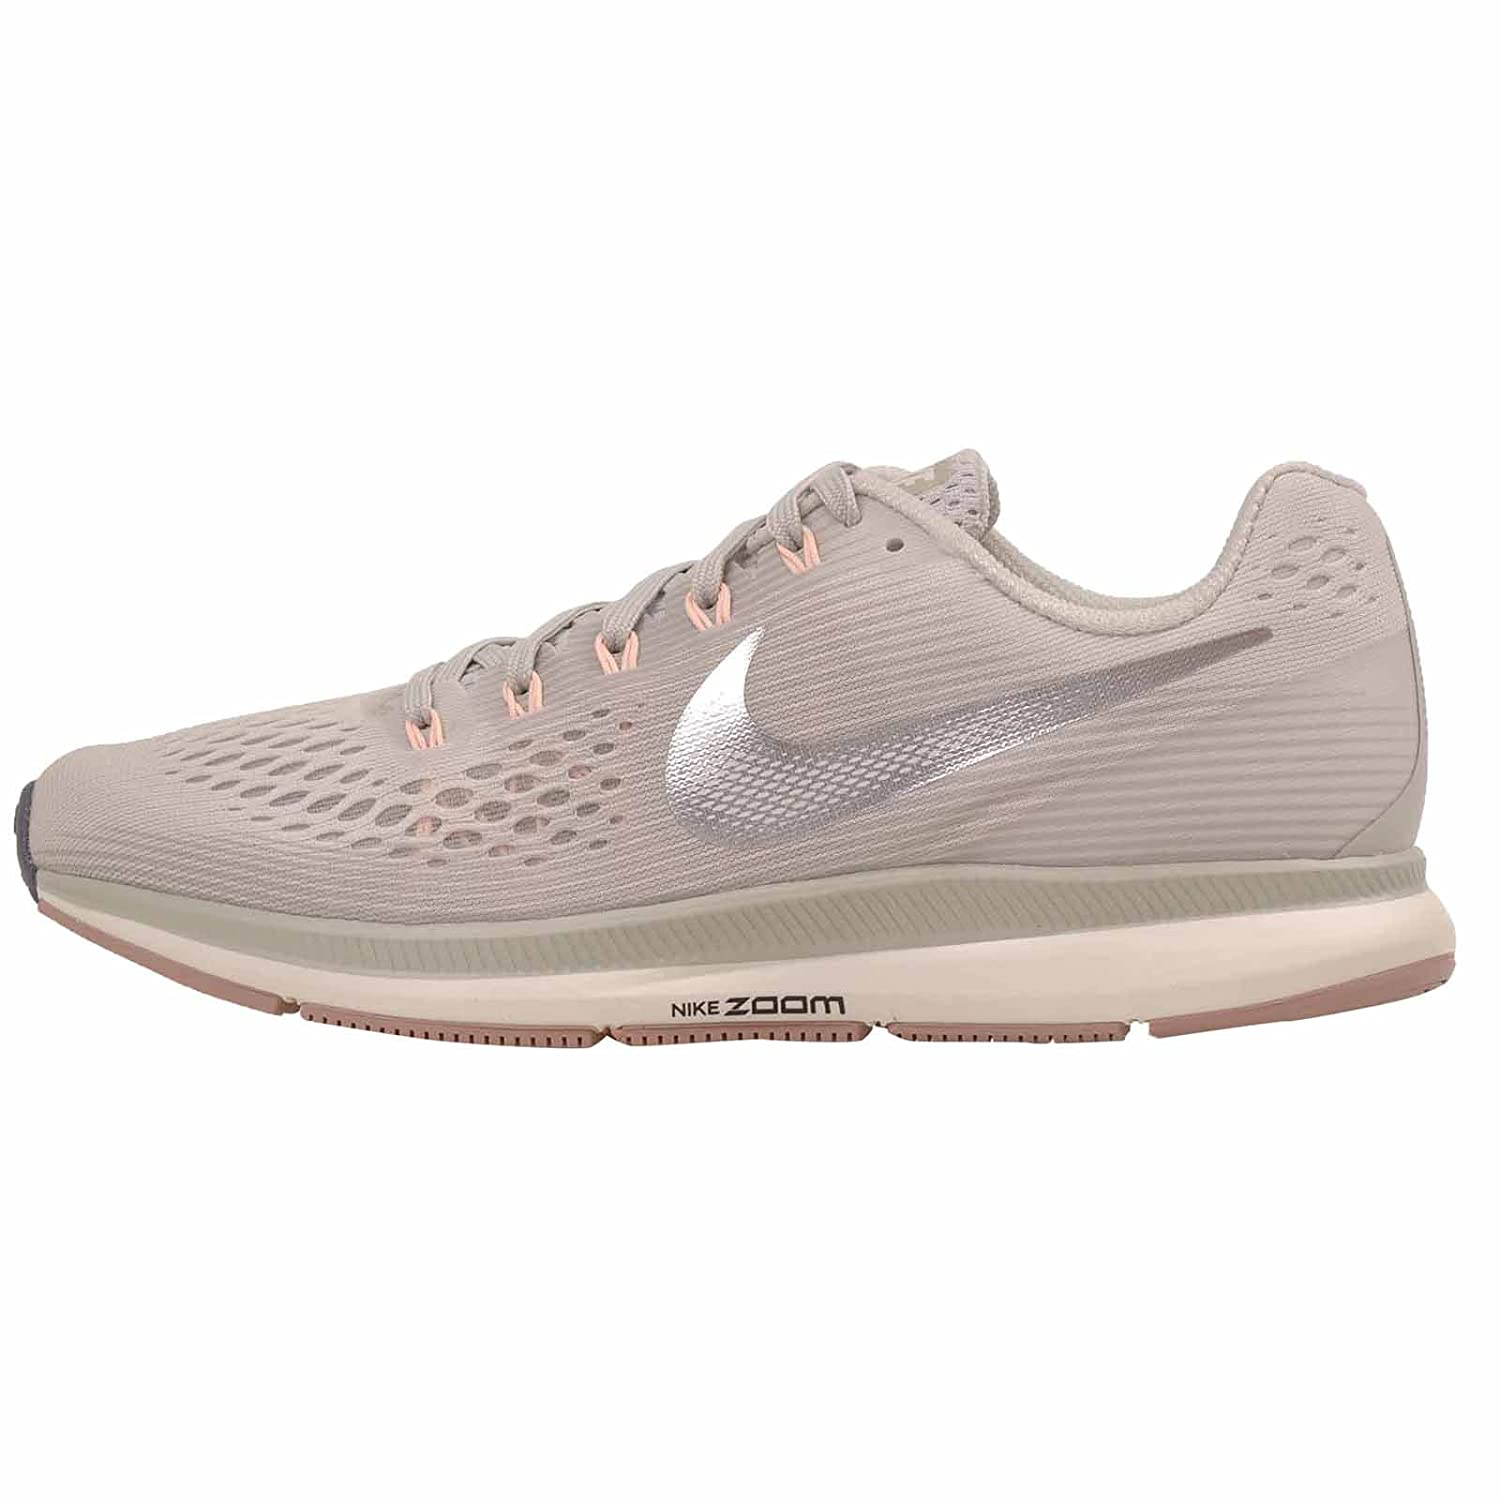 b0b9b13b9036 Amazon.com | NIKE Womens Air Zoom Pegasus 34 Running Trainers 880560  Sneakers Shoes (UK 4.5 US 7 EU 38, Light Bone Chrome Grey 004) | Road  Running